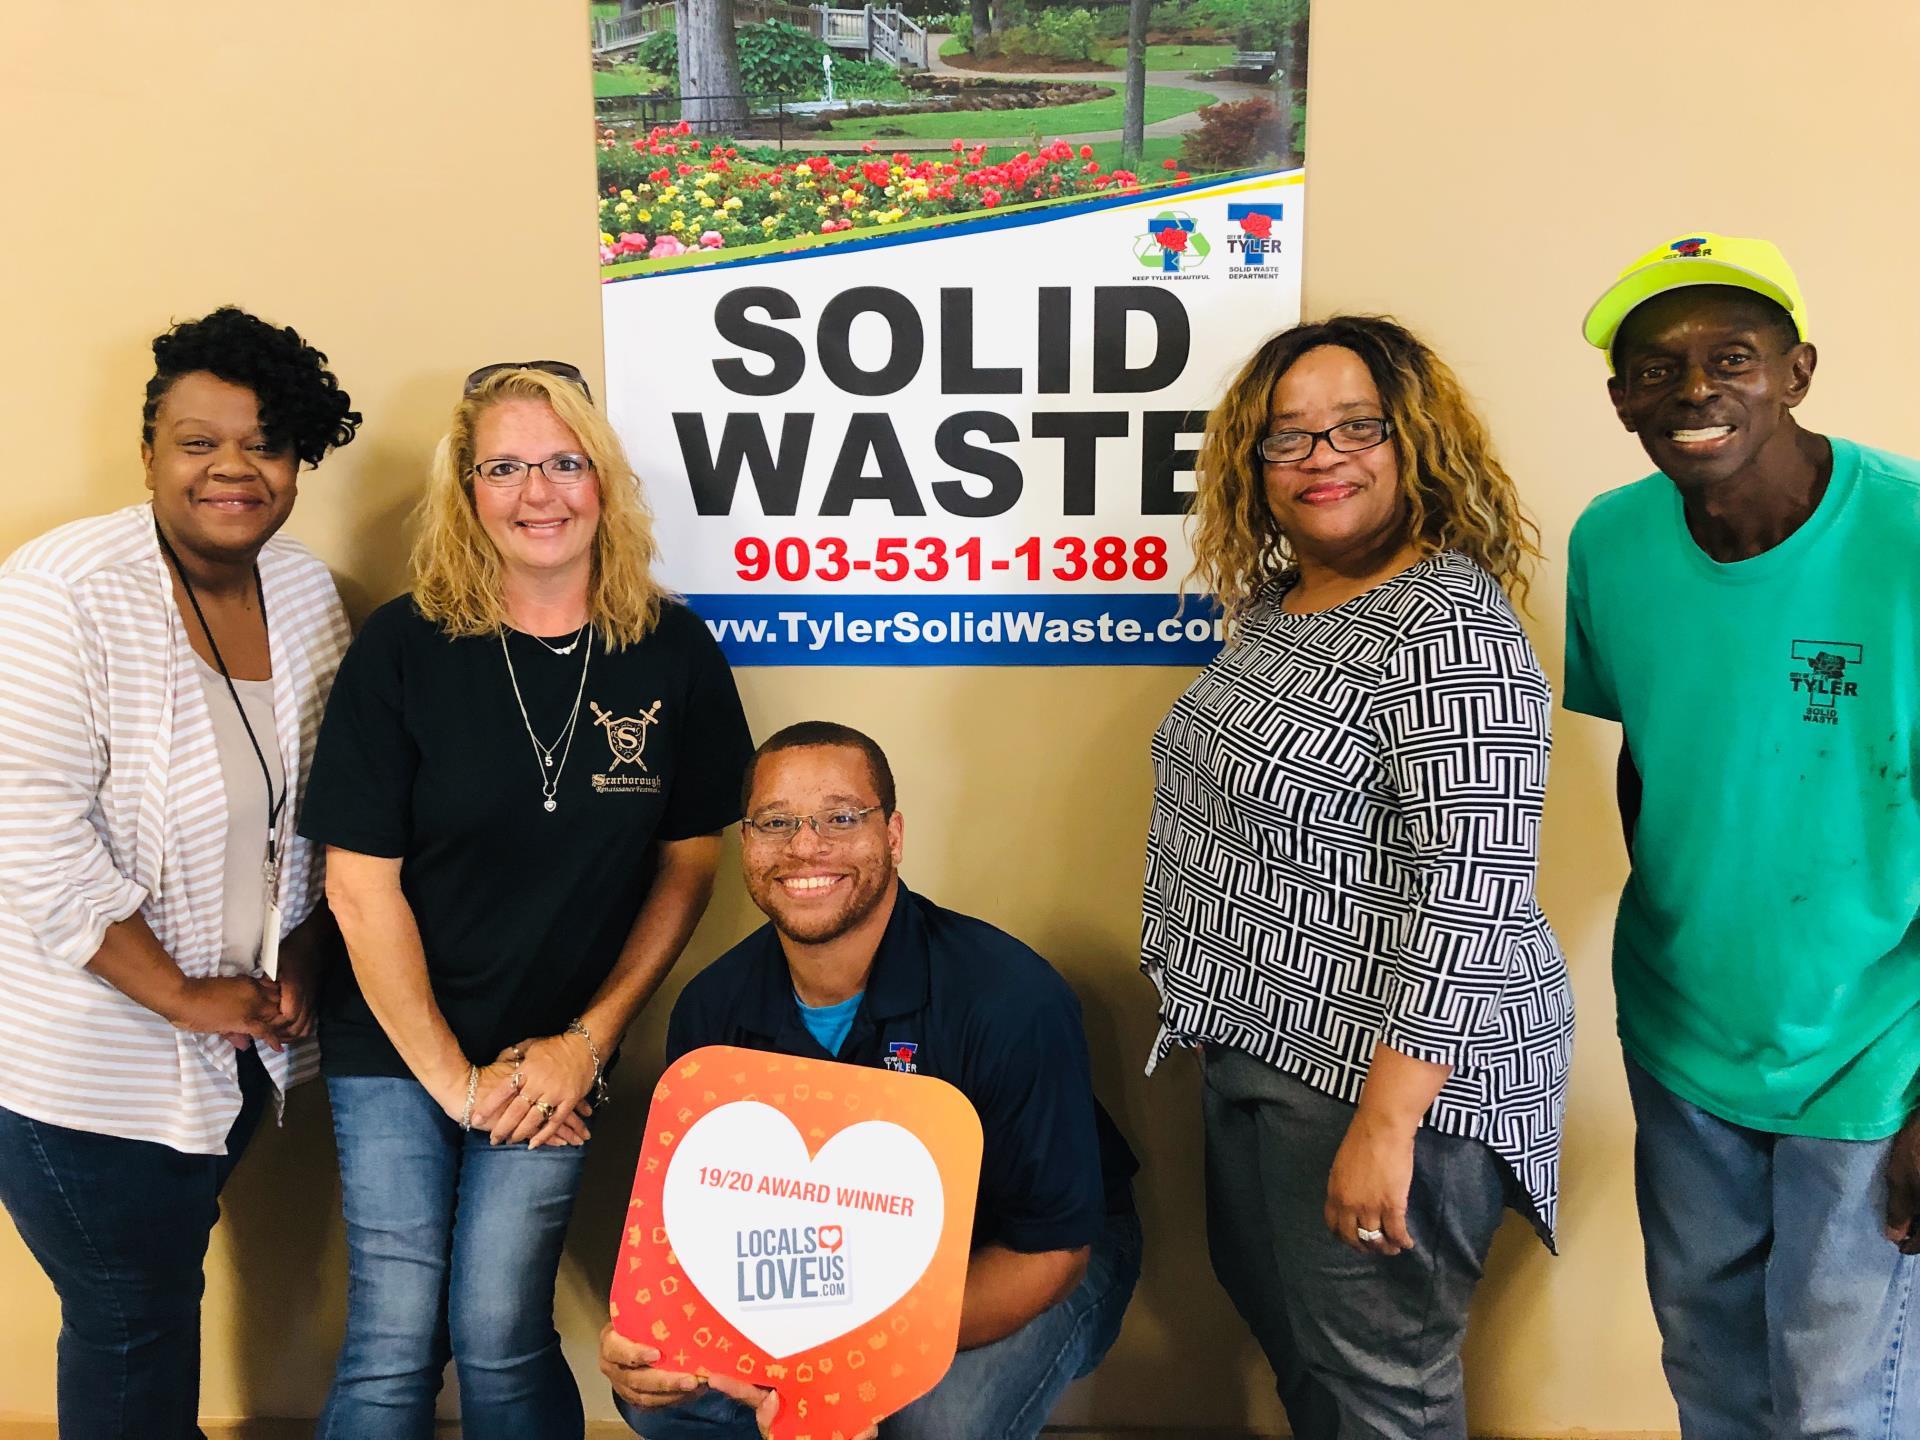 Solid Waste Locals Love Us Award 2019